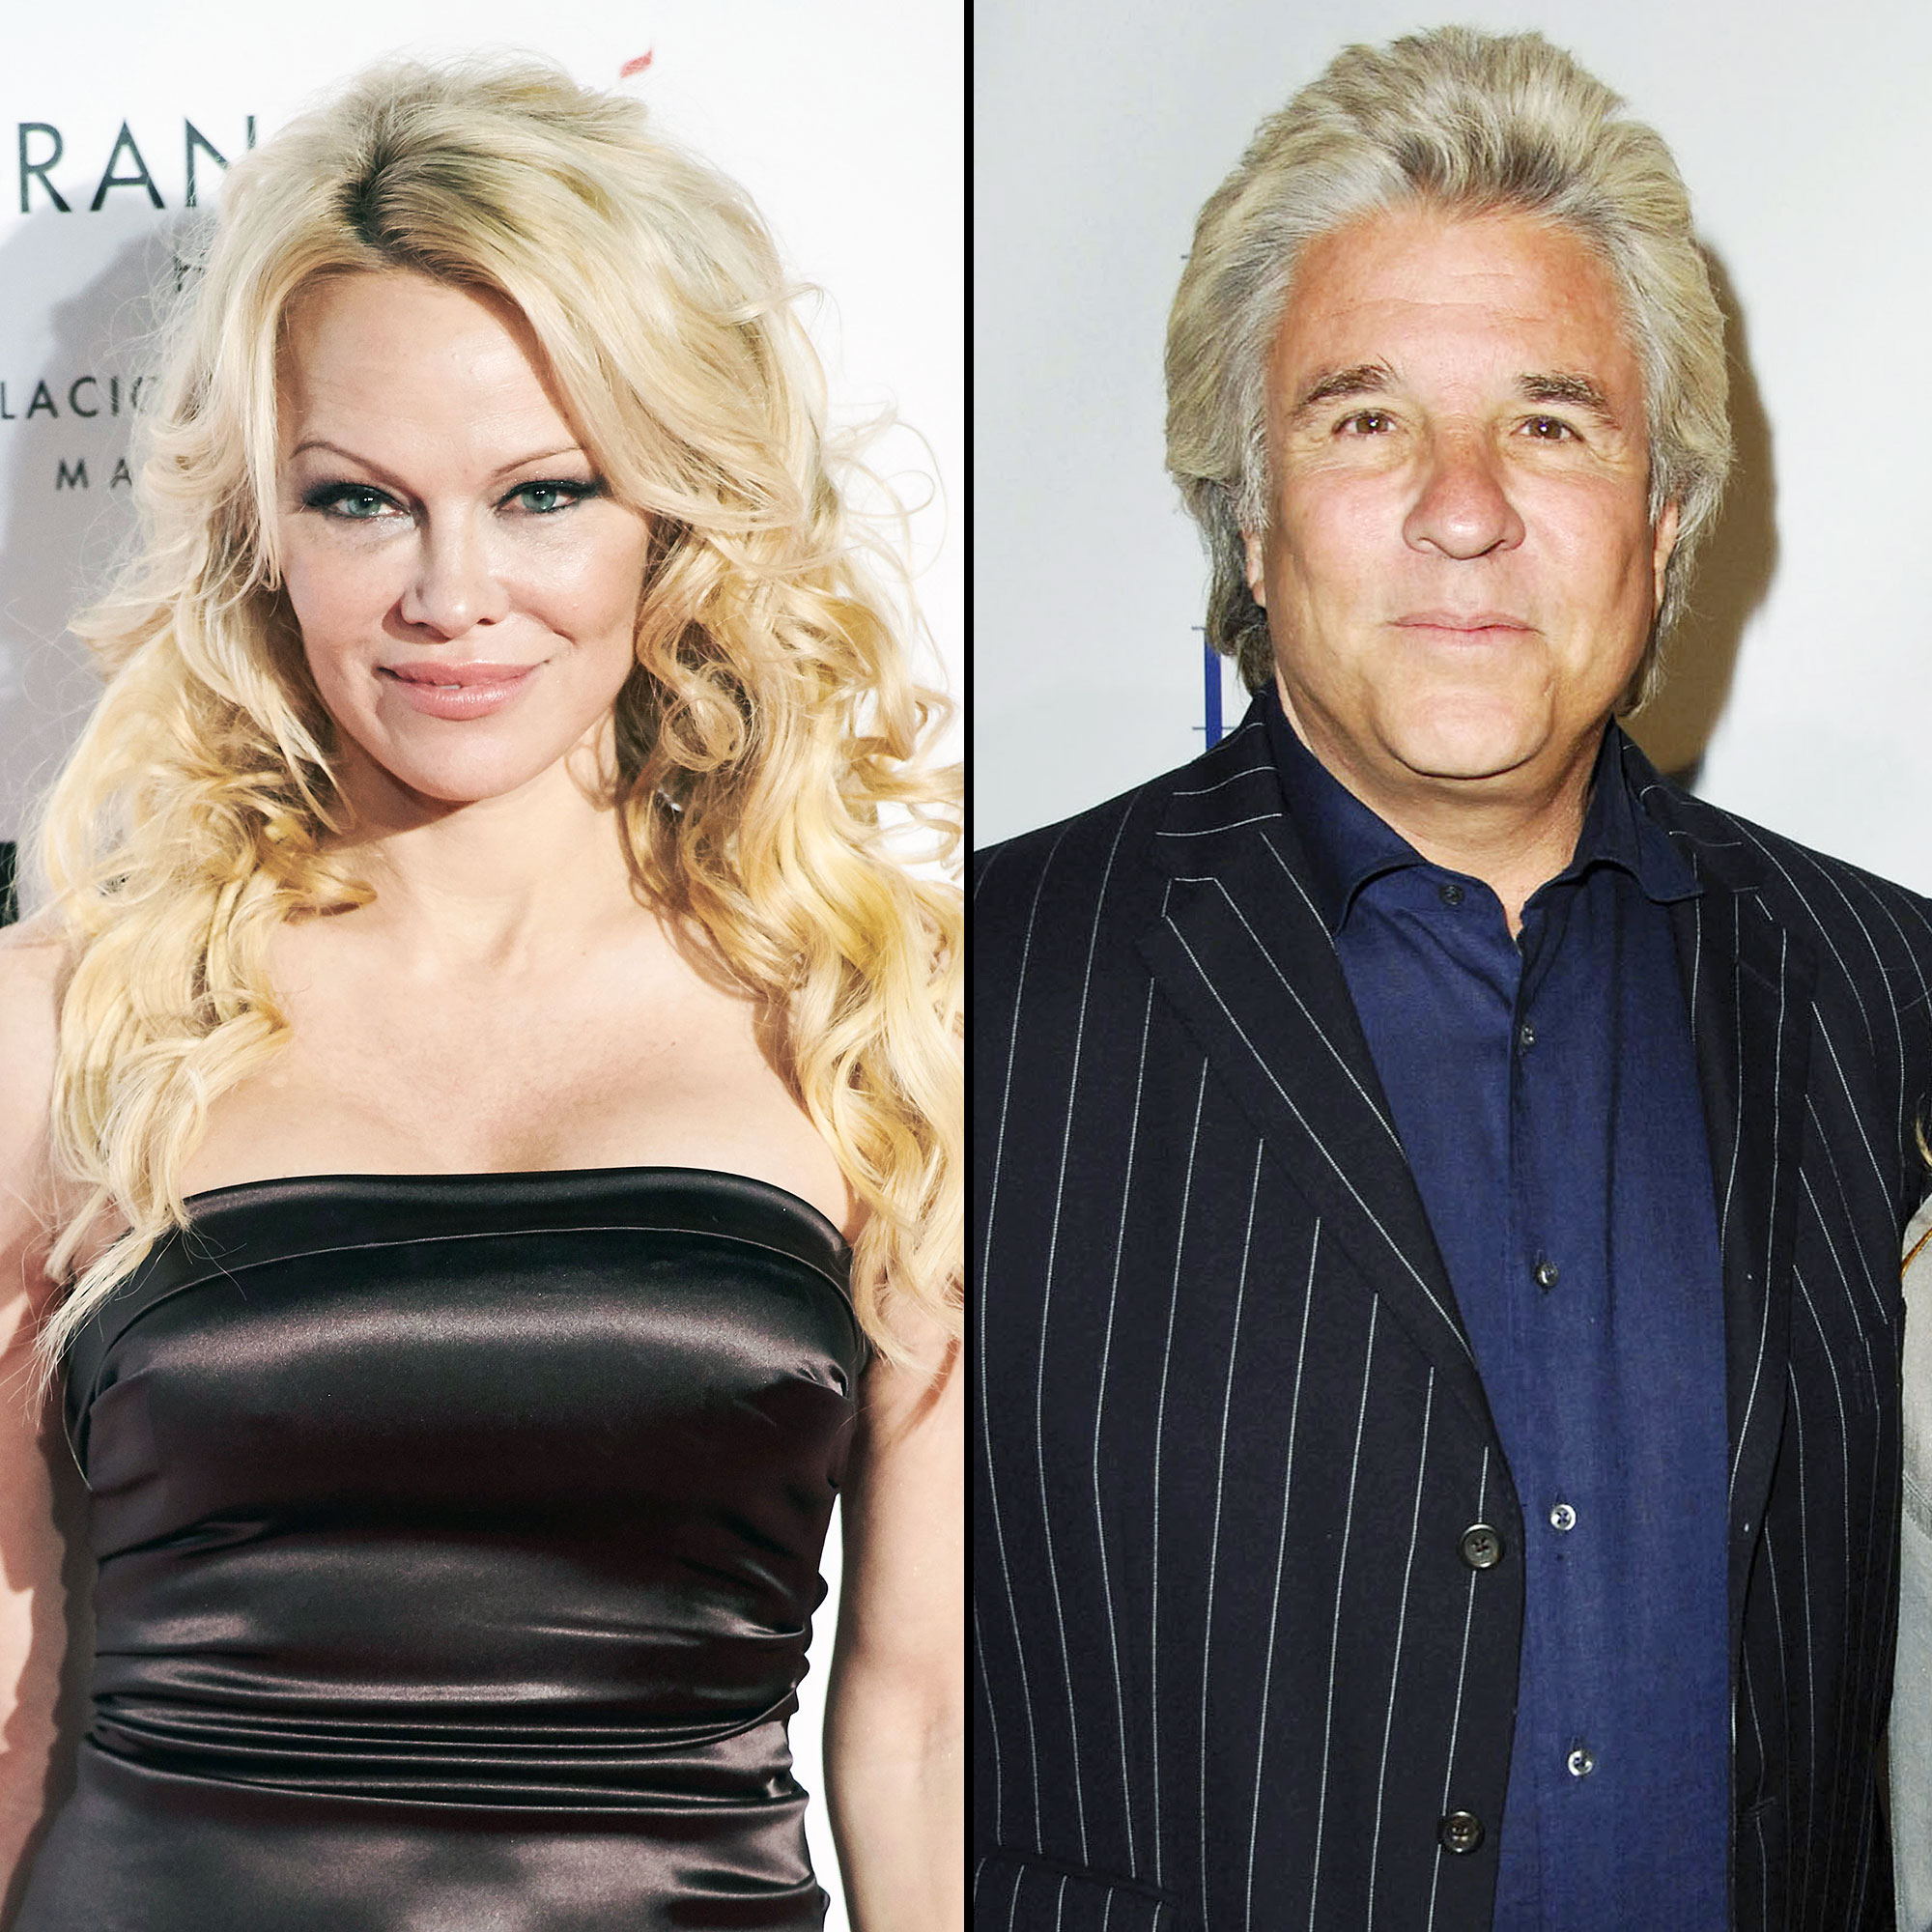 Pamela Anderson Says She Never Had a Wedding or Physical Relationship With Jon Peters